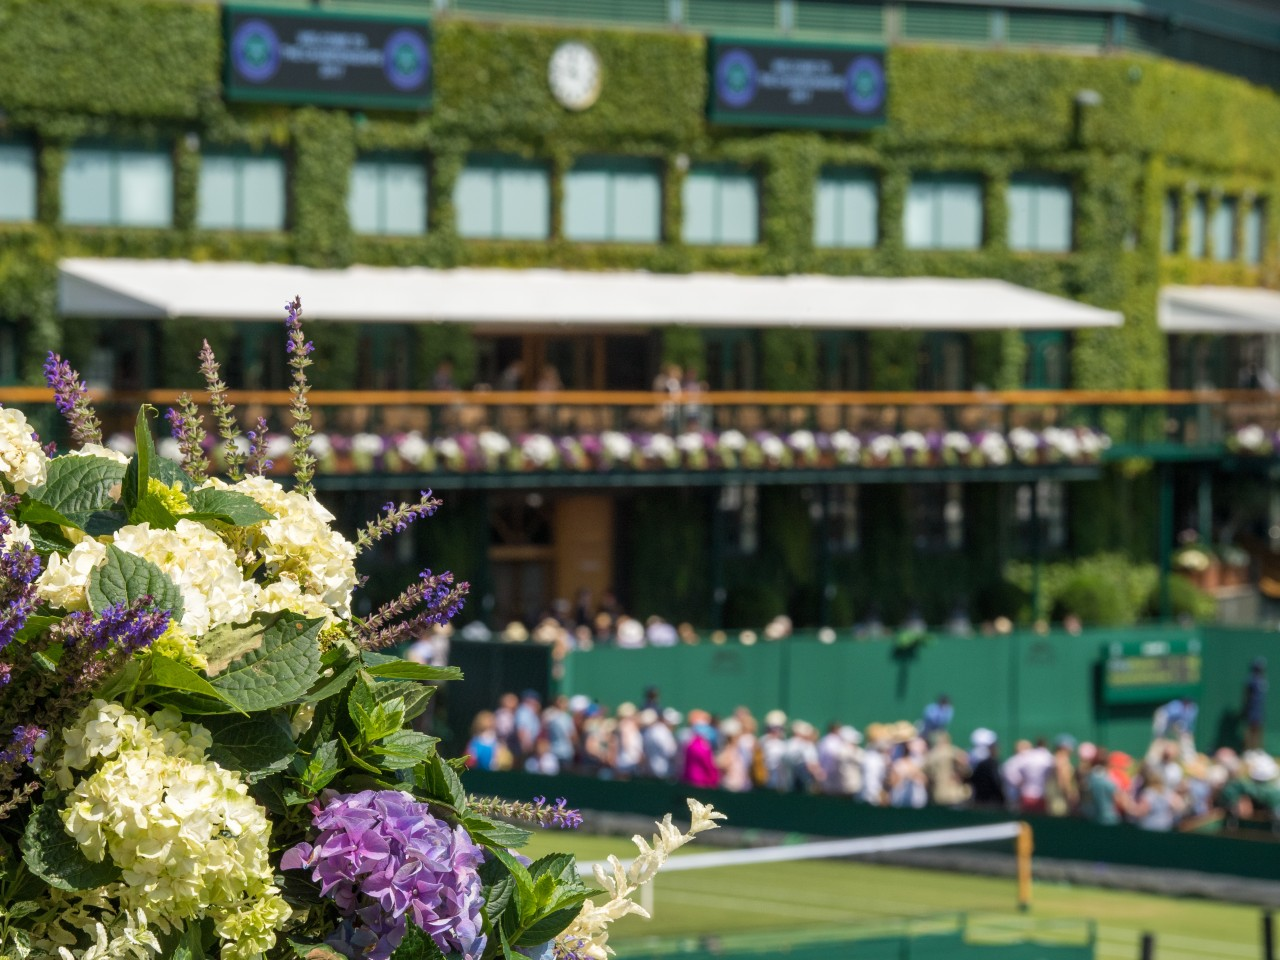 Wimbledon - Court No.1 - 01 July 2019